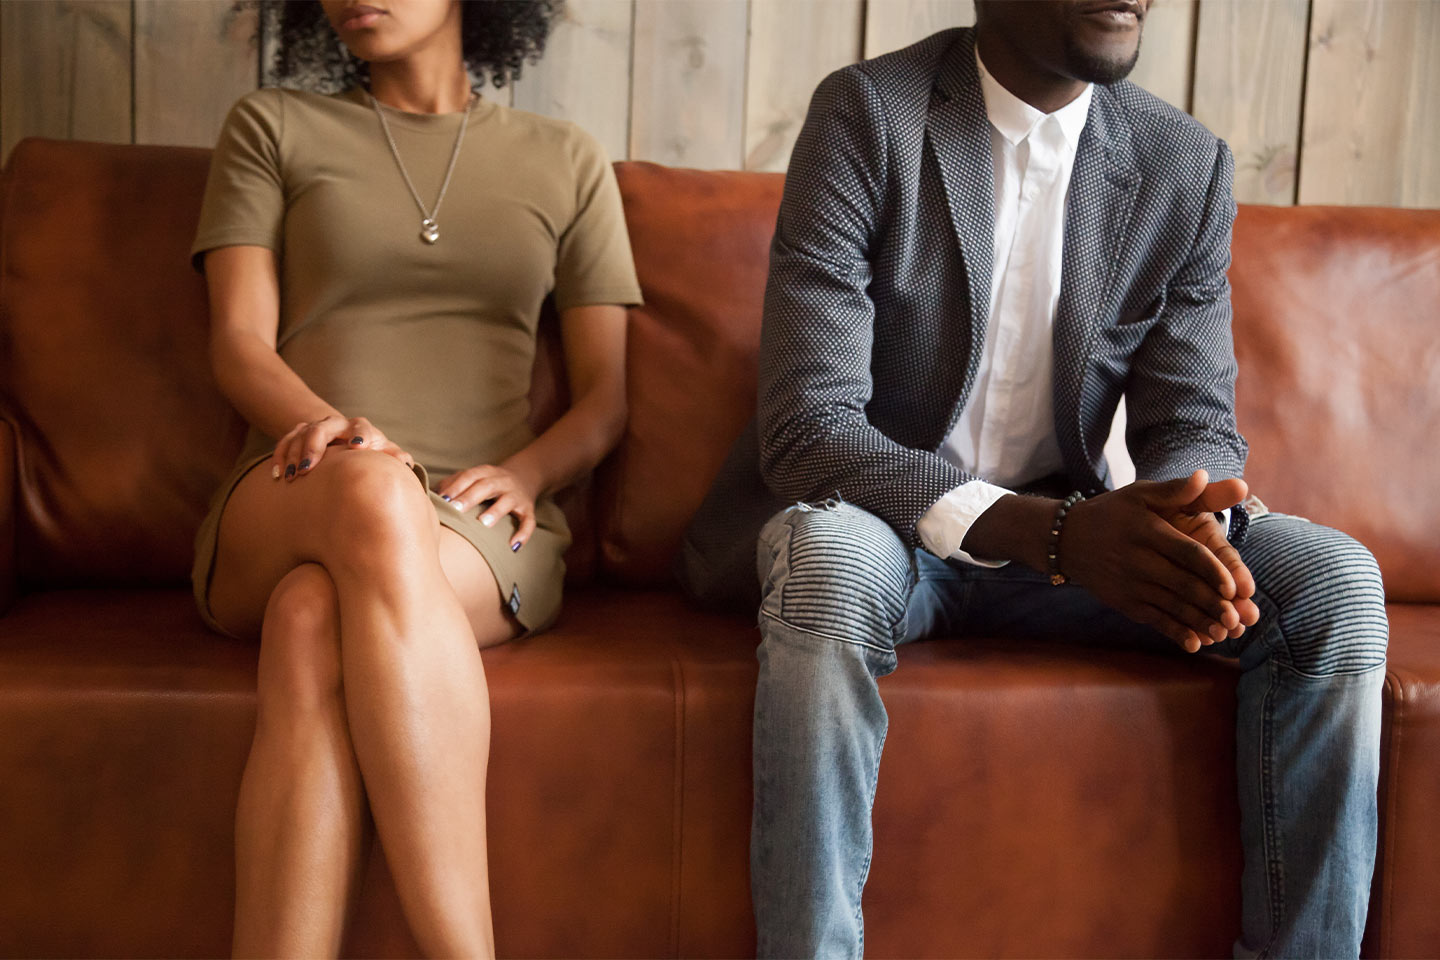 Drama As Man Who Was Helped Impregnates His Friend's Girlfriend